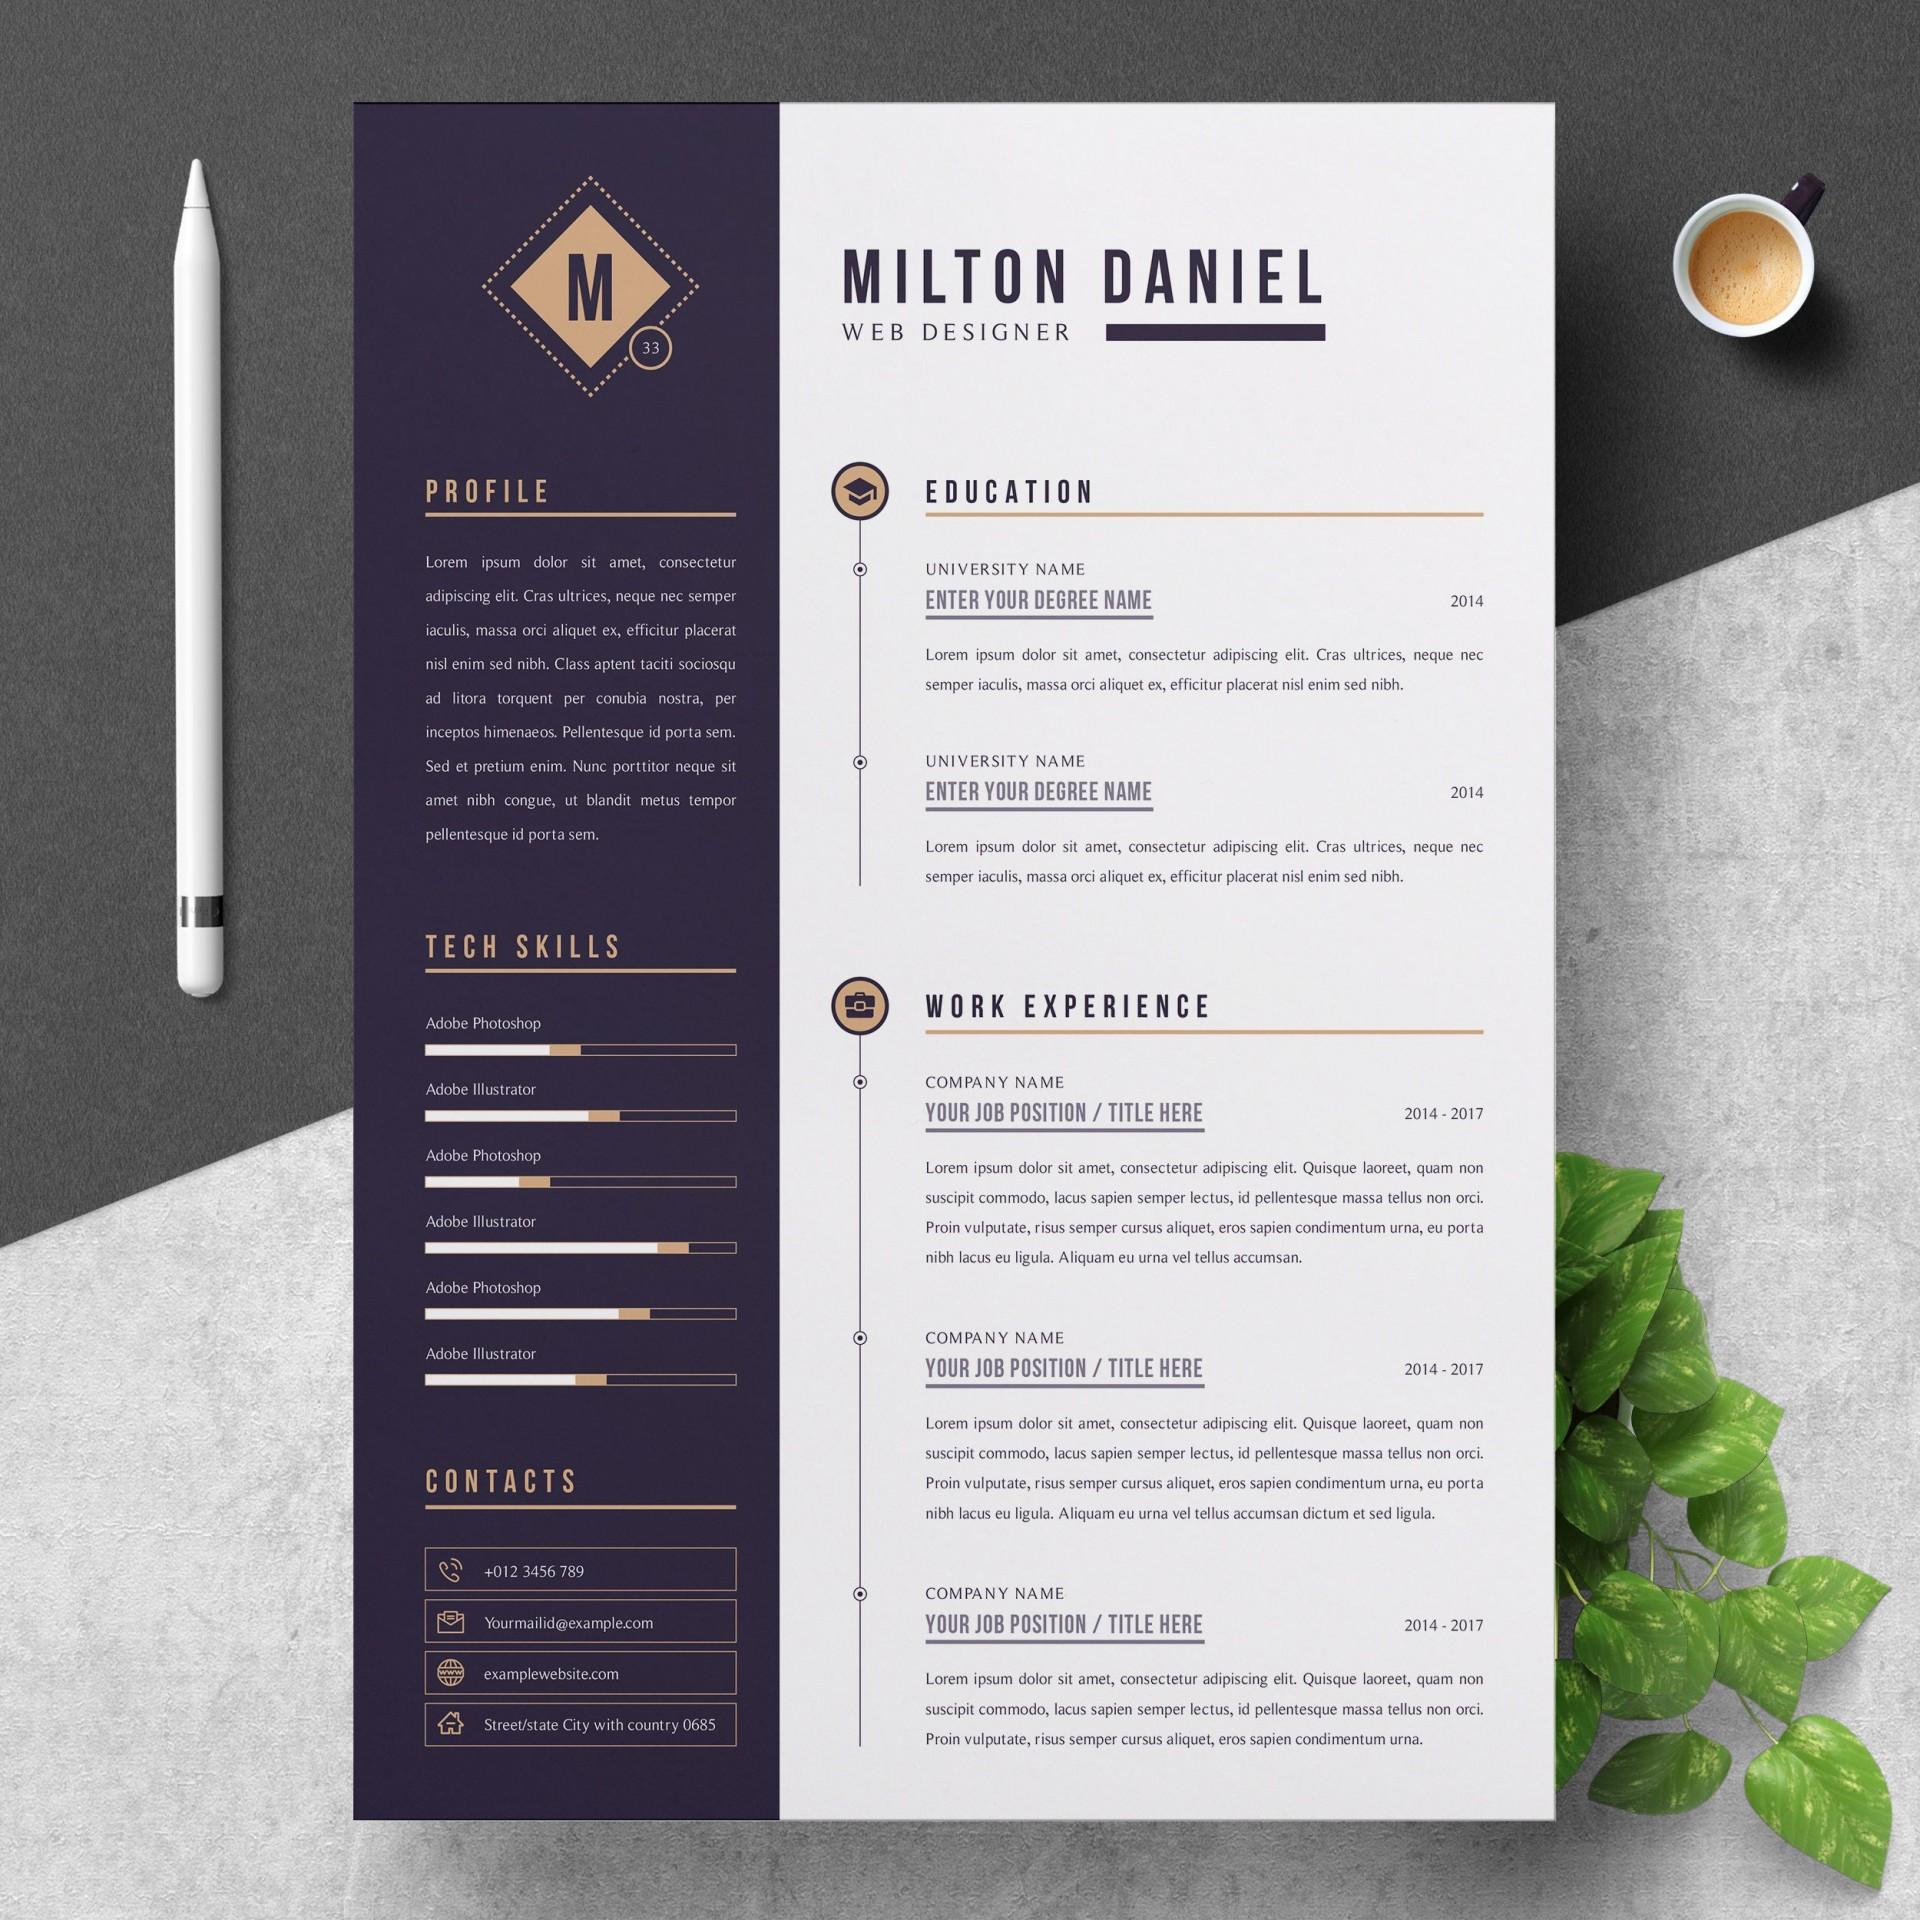 000 Beautiful Professional Resume Template Free Download Word Concept  Cv 2020 Format With Photo1920